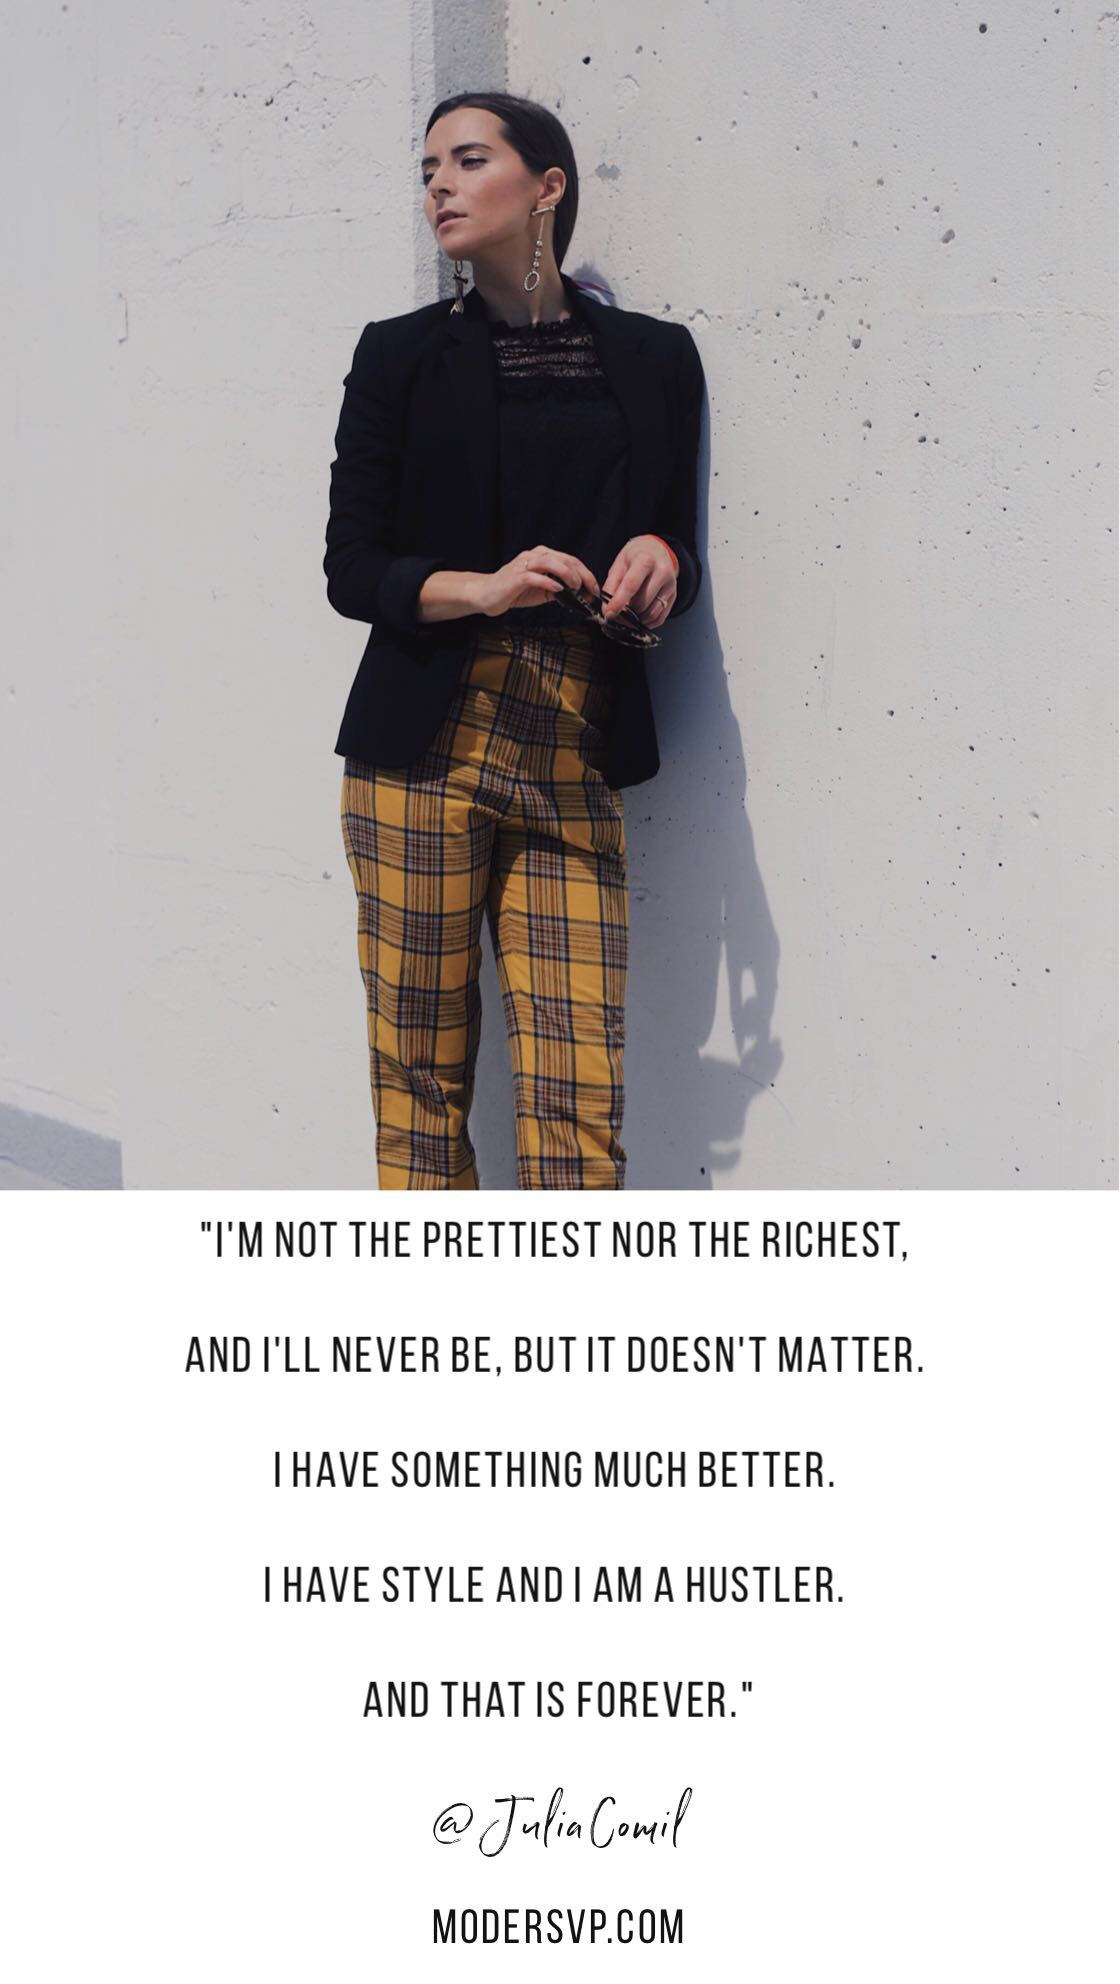 """Best Style Quotes - Fashion Quotes """"I'm not the prettiest nor the richest, and I'll never be, but it doesn't matter. I have something much better. I have style and I am a hustler. And that is forever."""""""" Julia Comil Fashion Blogger - - Read more style quotes from Anna Wintour, Diane Von Furstenberg, Coco Chanel and other fashion designers and style icons on Houseofcomil.com"""